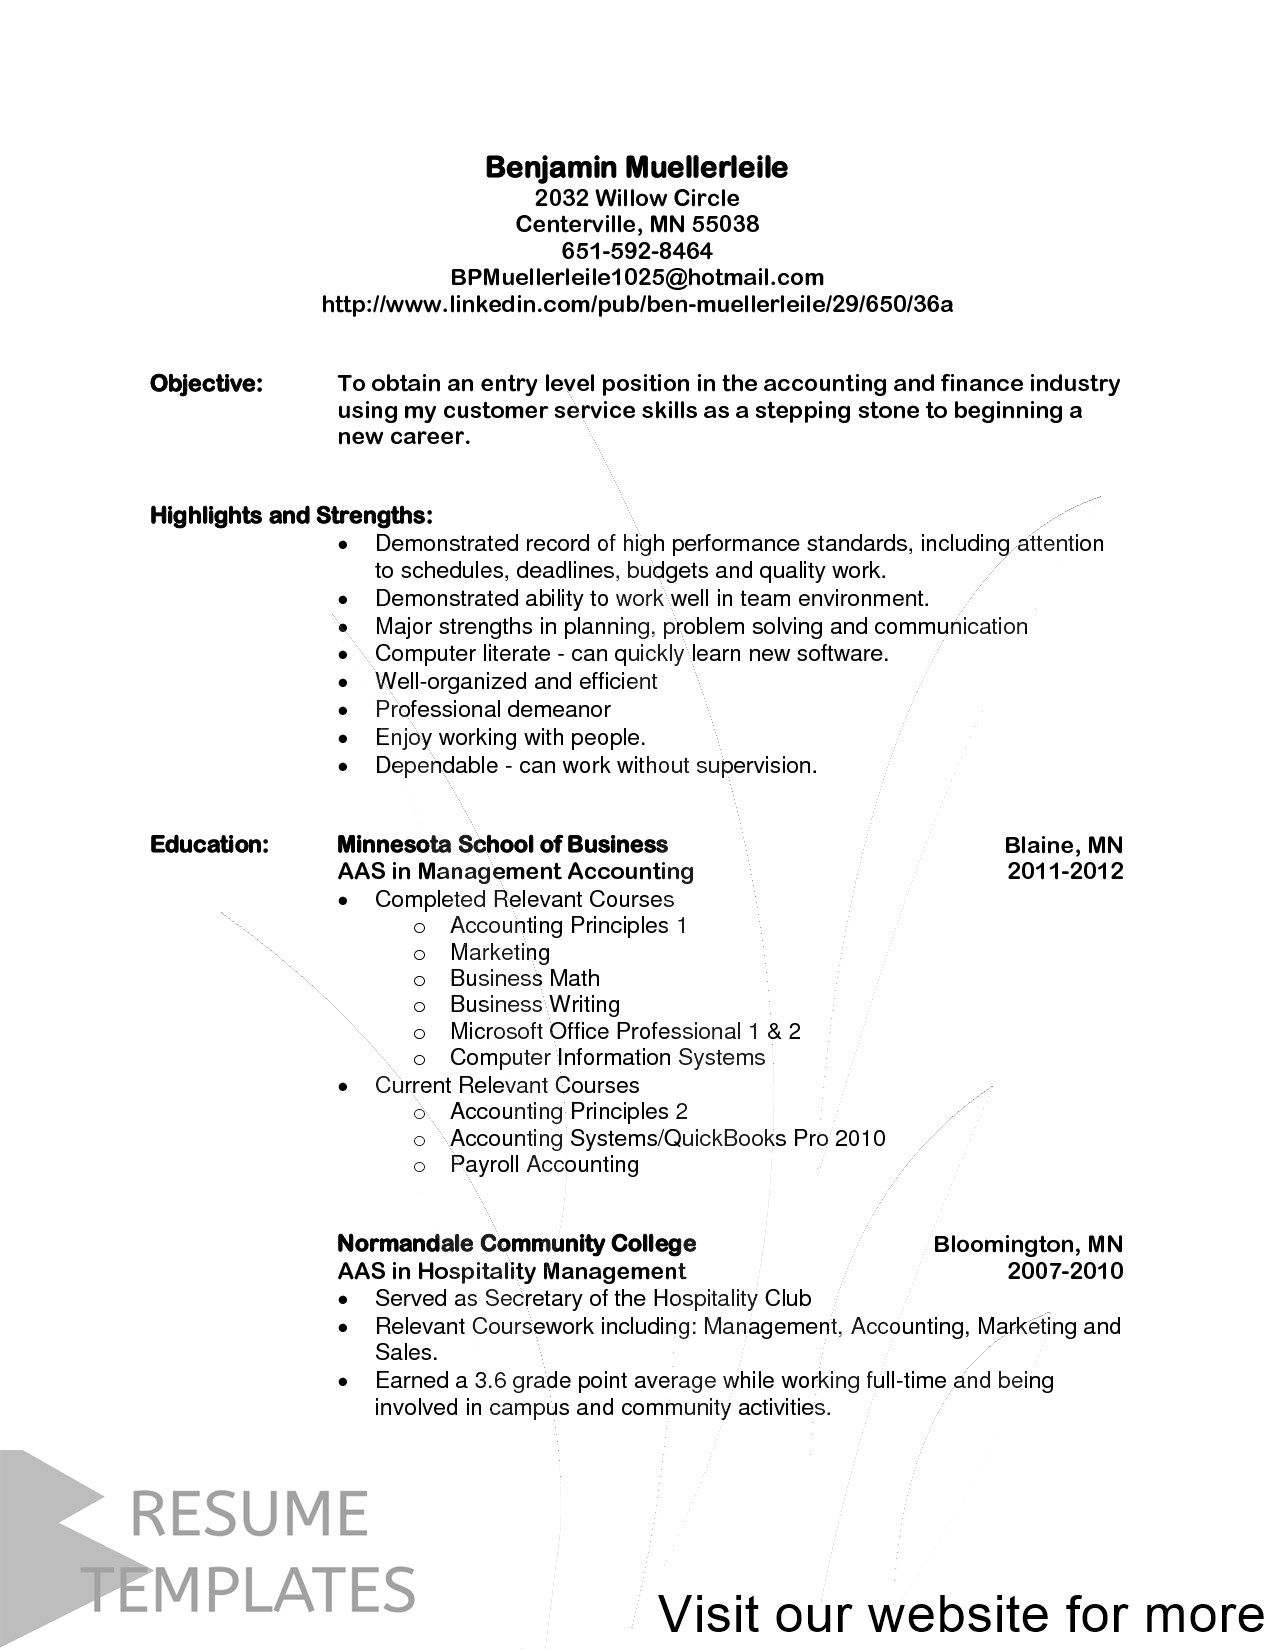 college student resume summary 2020 in 2020 Resume cover